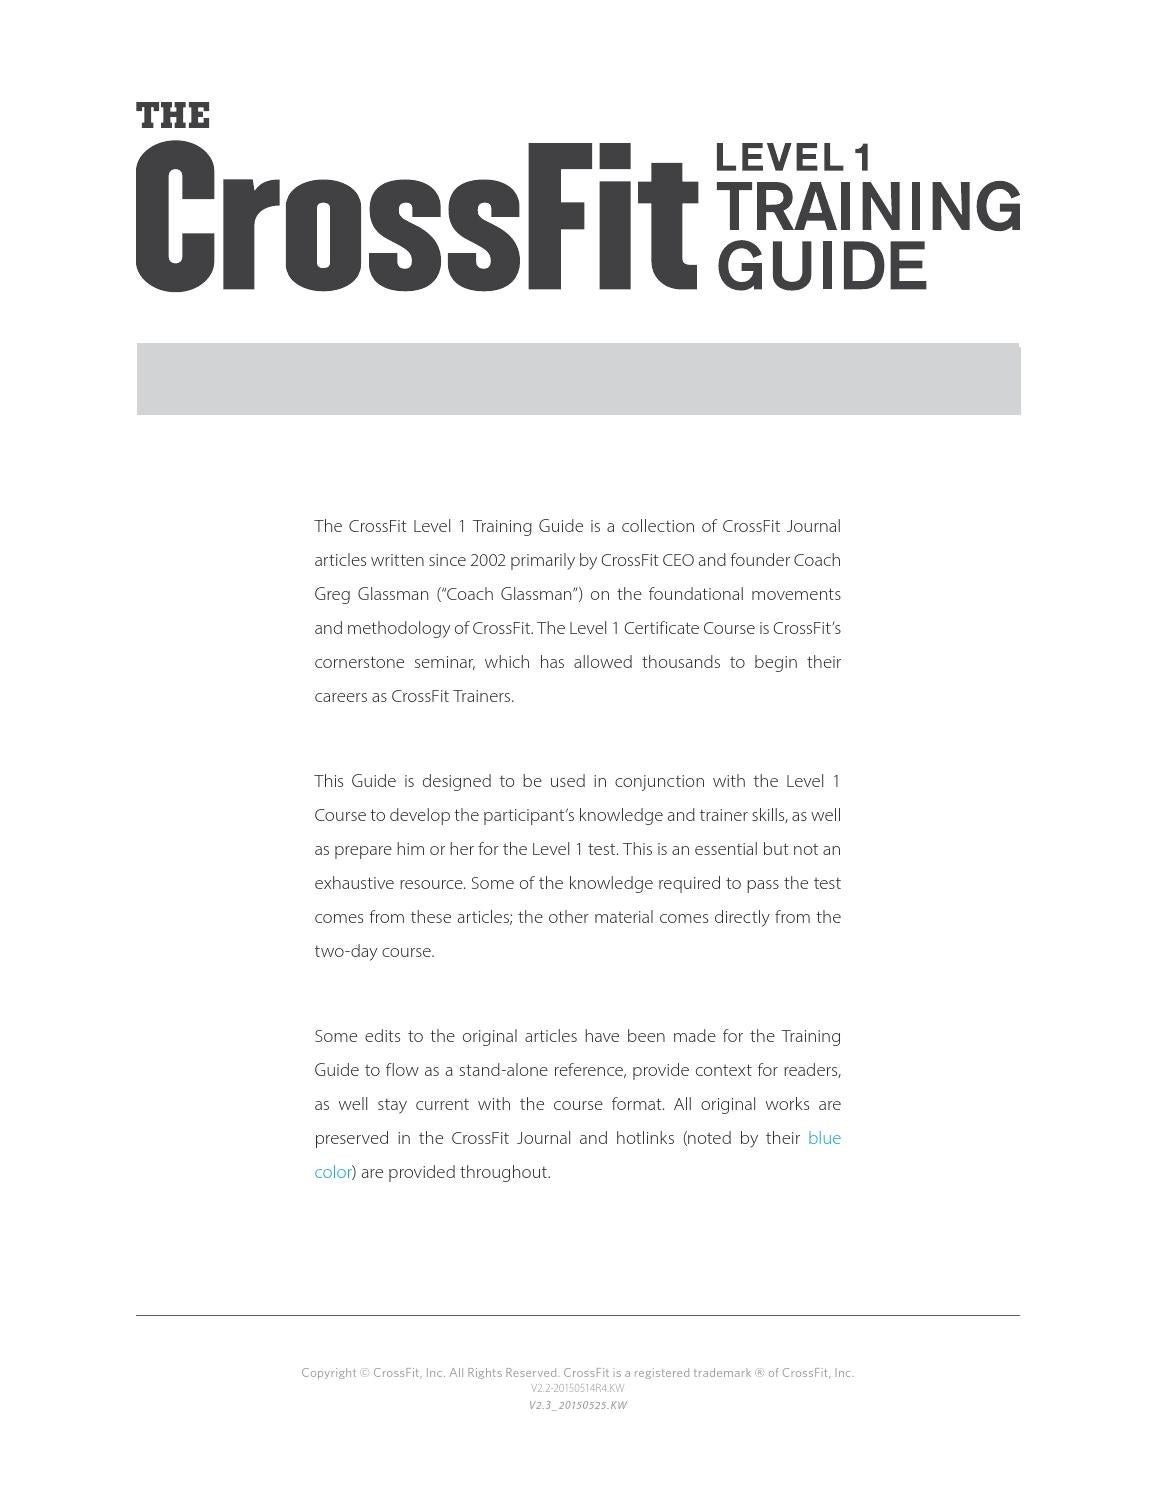 Crossfit Training Guide Level 1 By Jmannes Issuu